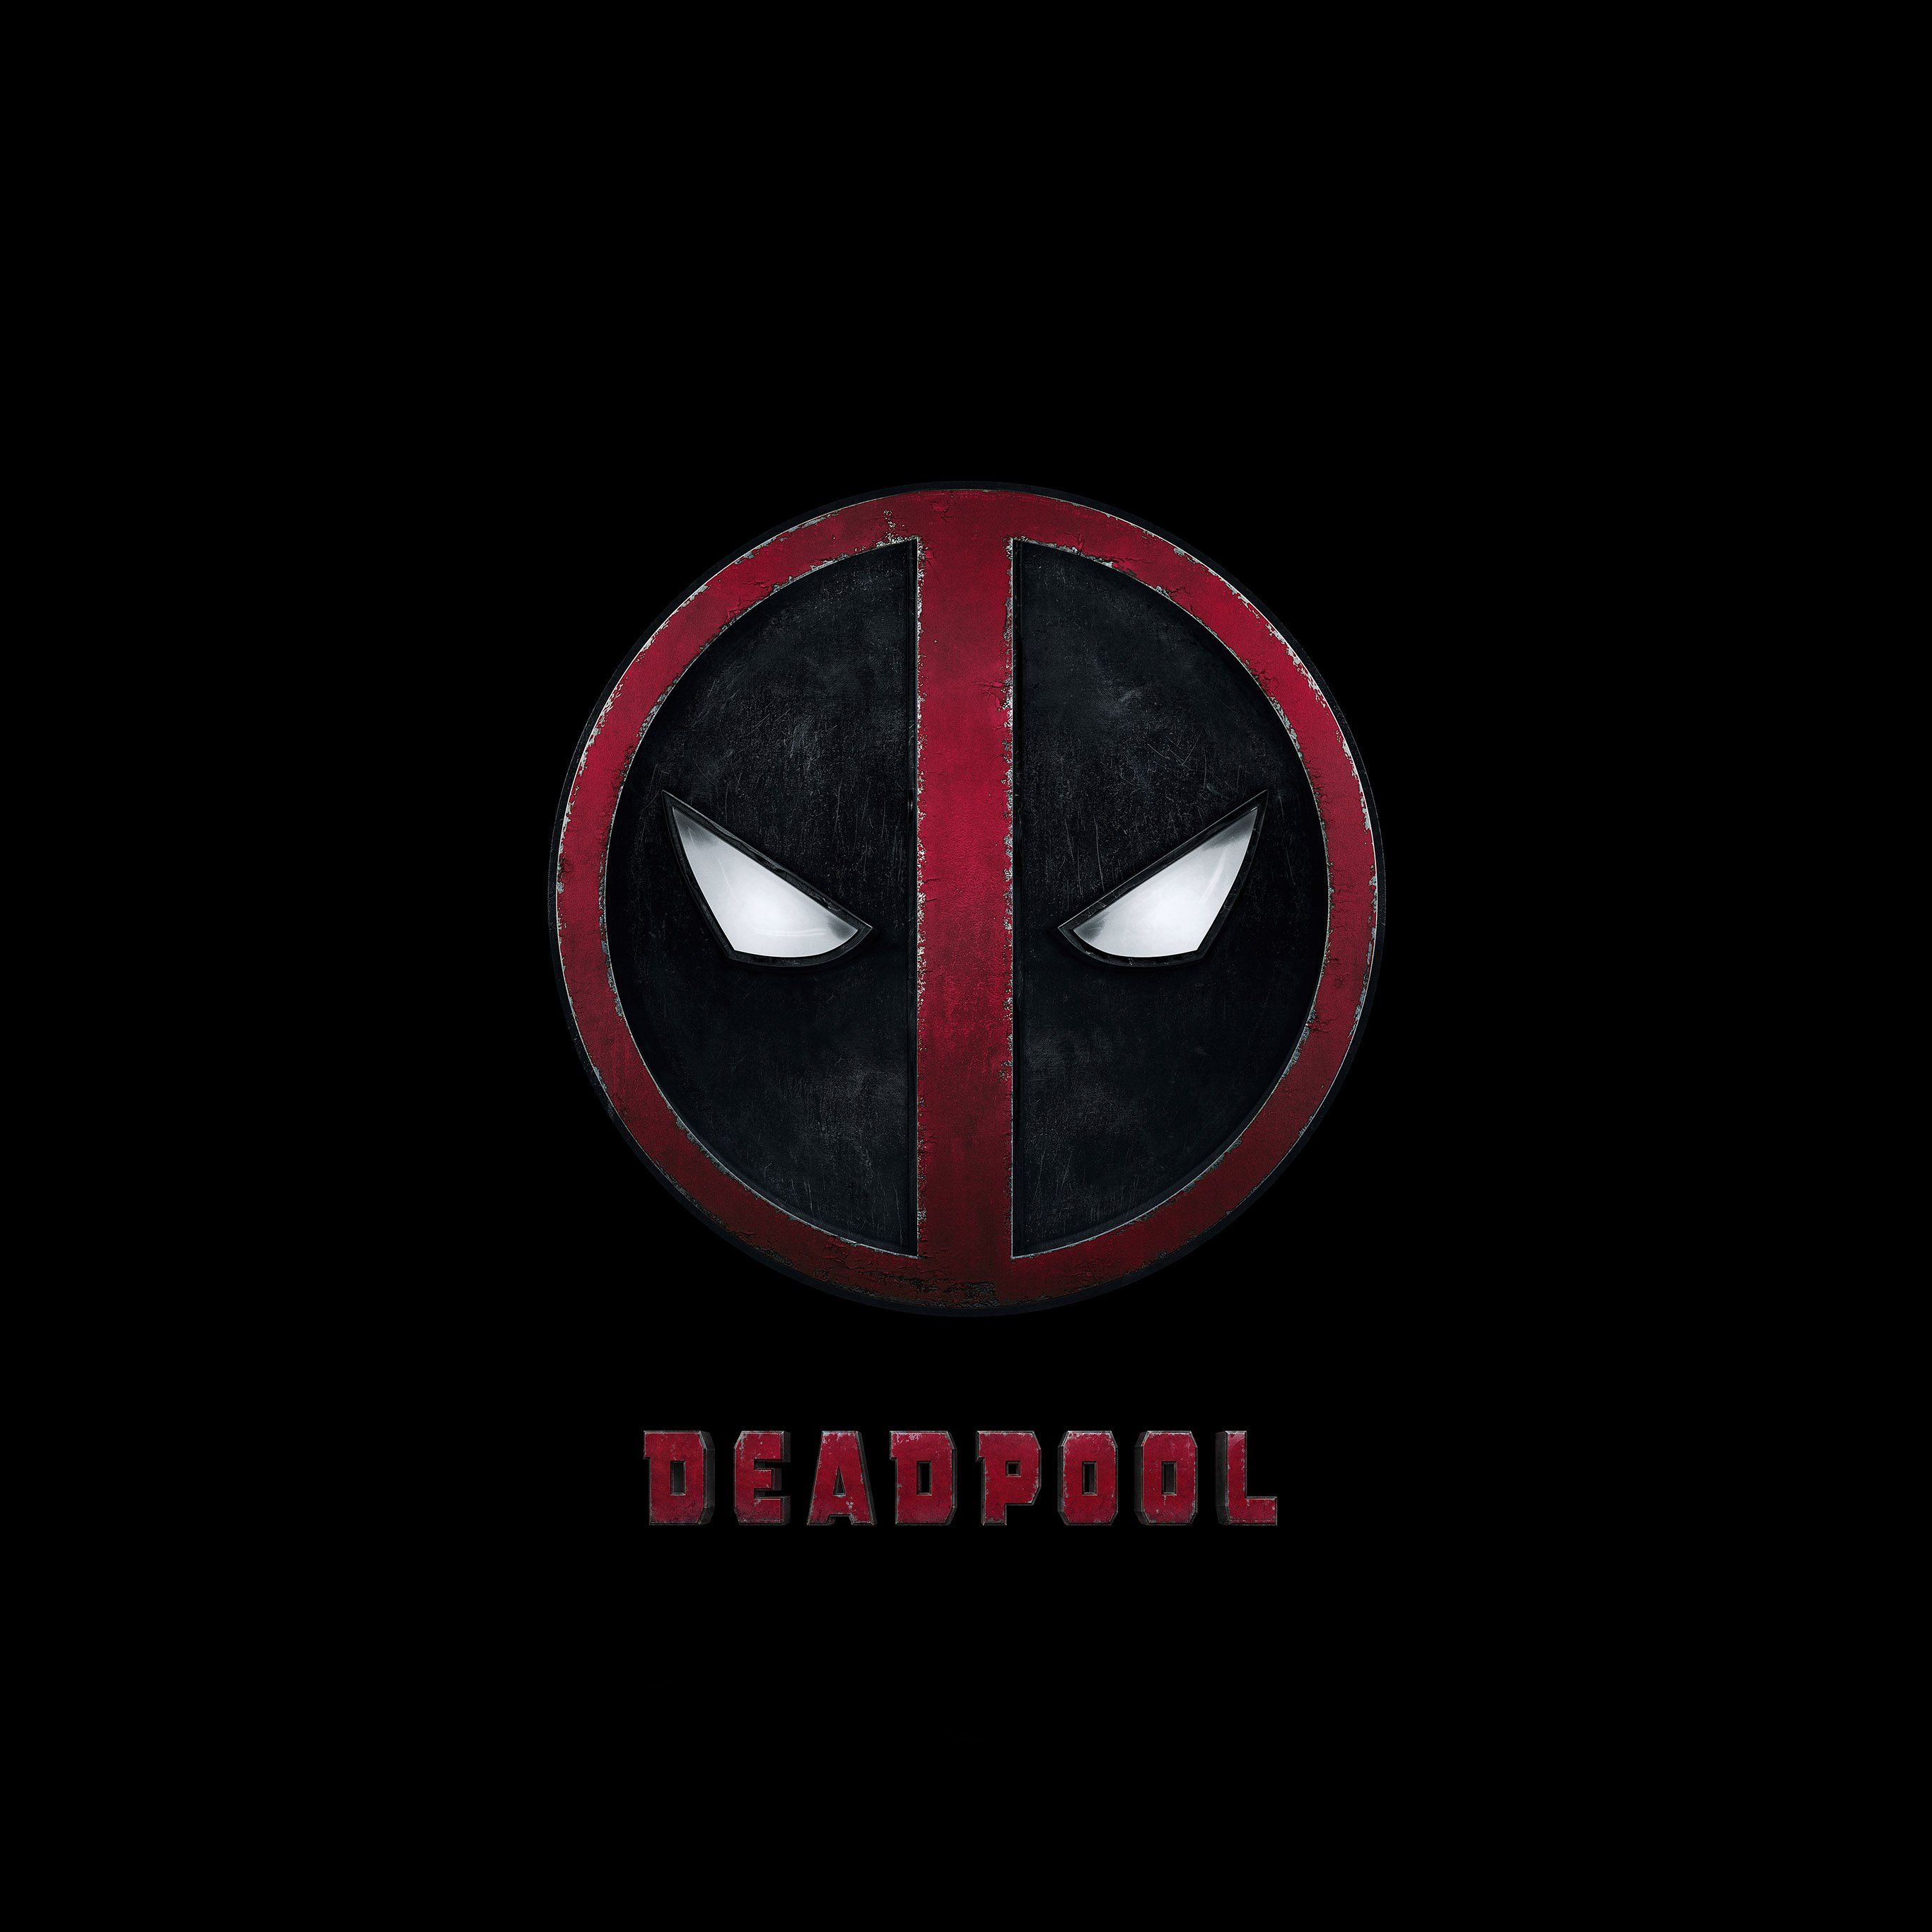 Deadpool Samsung Wallpapers Top Free Deadpool Samsung Backgrounds Wallpaperaccess